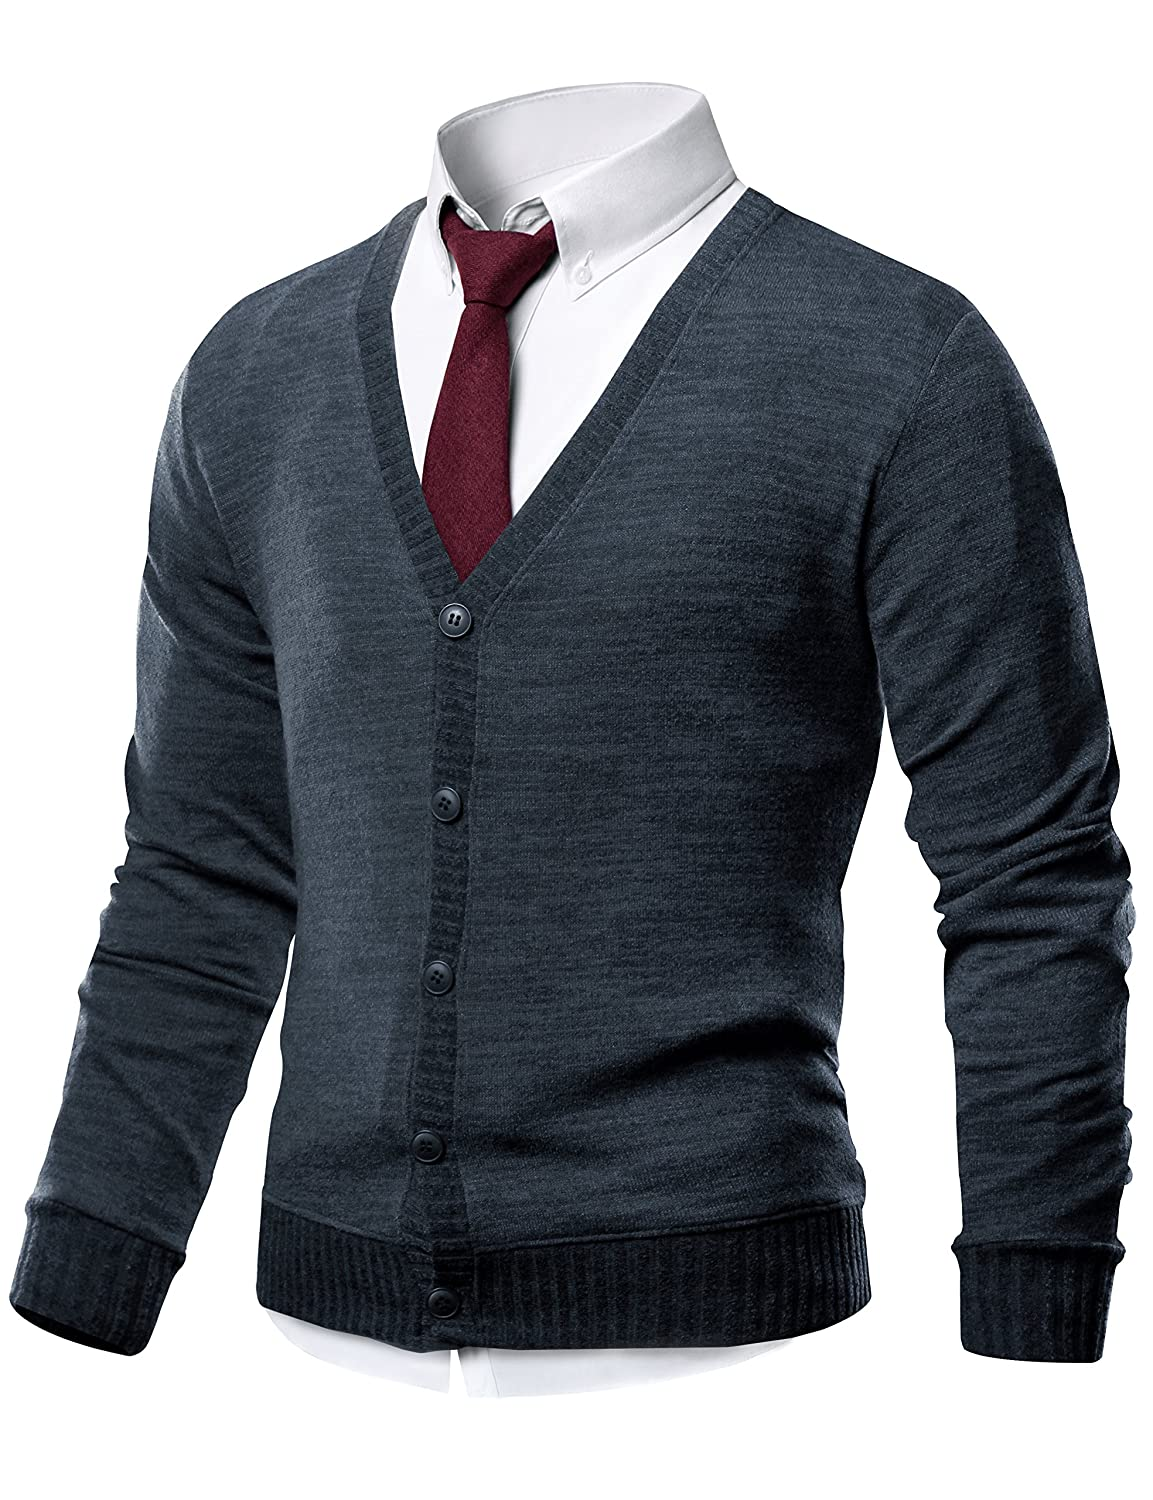 HARRISON83 Mens Slim Fit V-Neck Button Up Cardigan Sweater